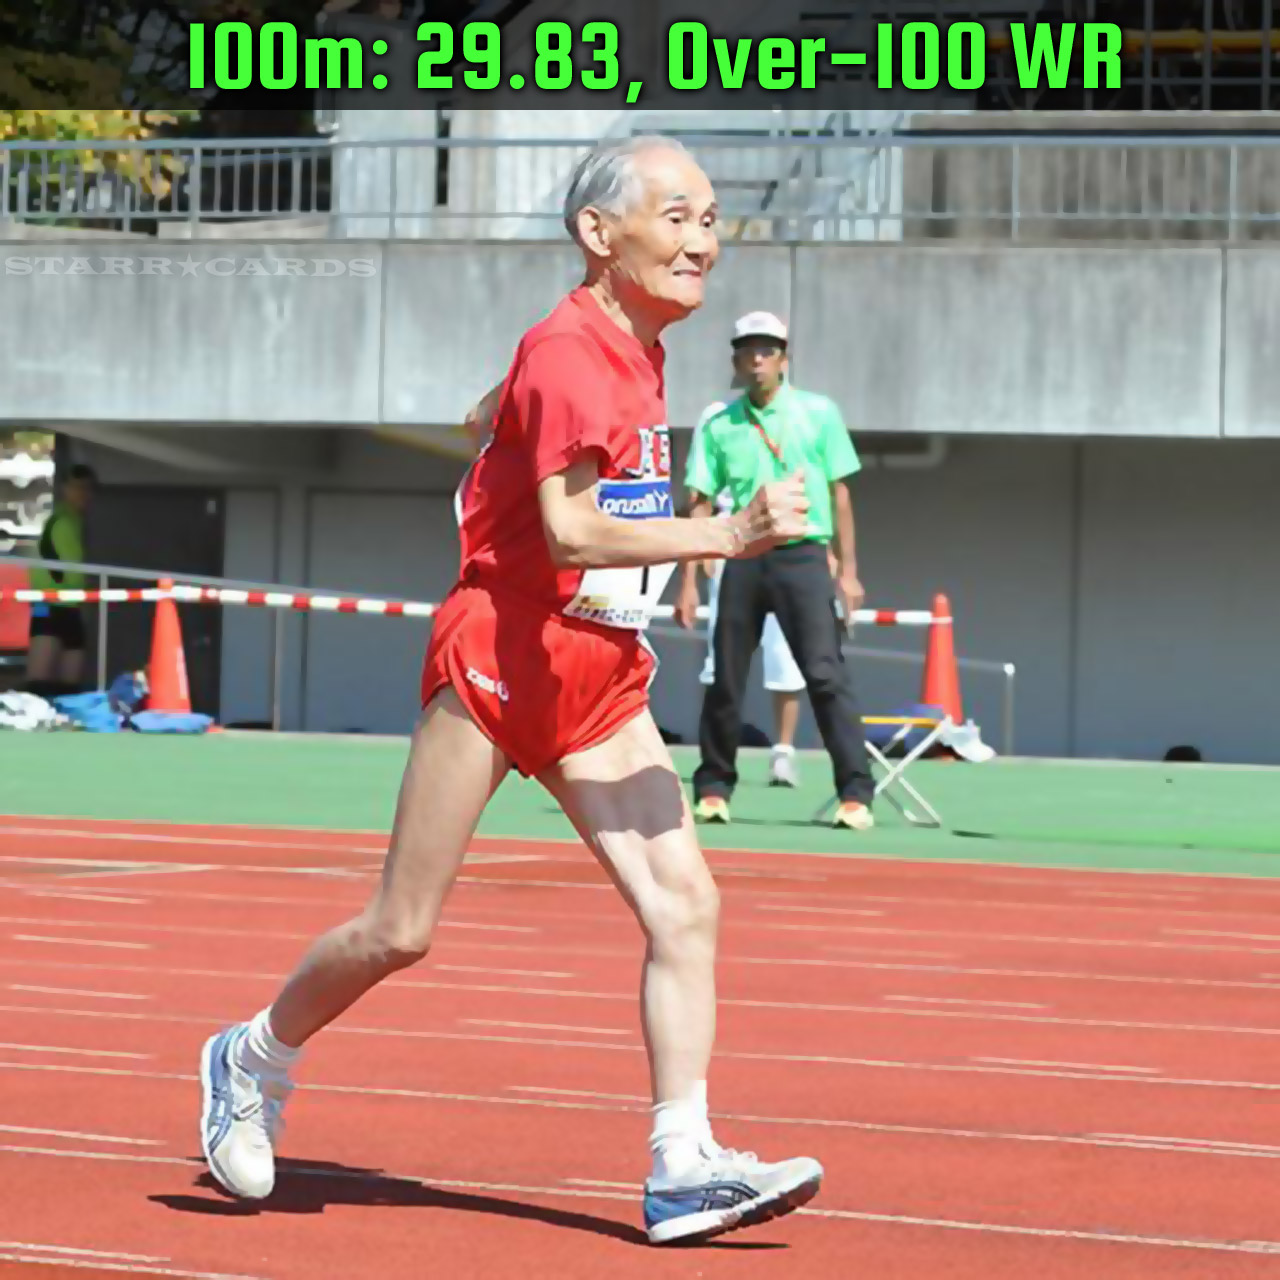 Japan's Hidekichi Miyazaki holds the 100m world record for centenarians with a time of 29.83 seconds.